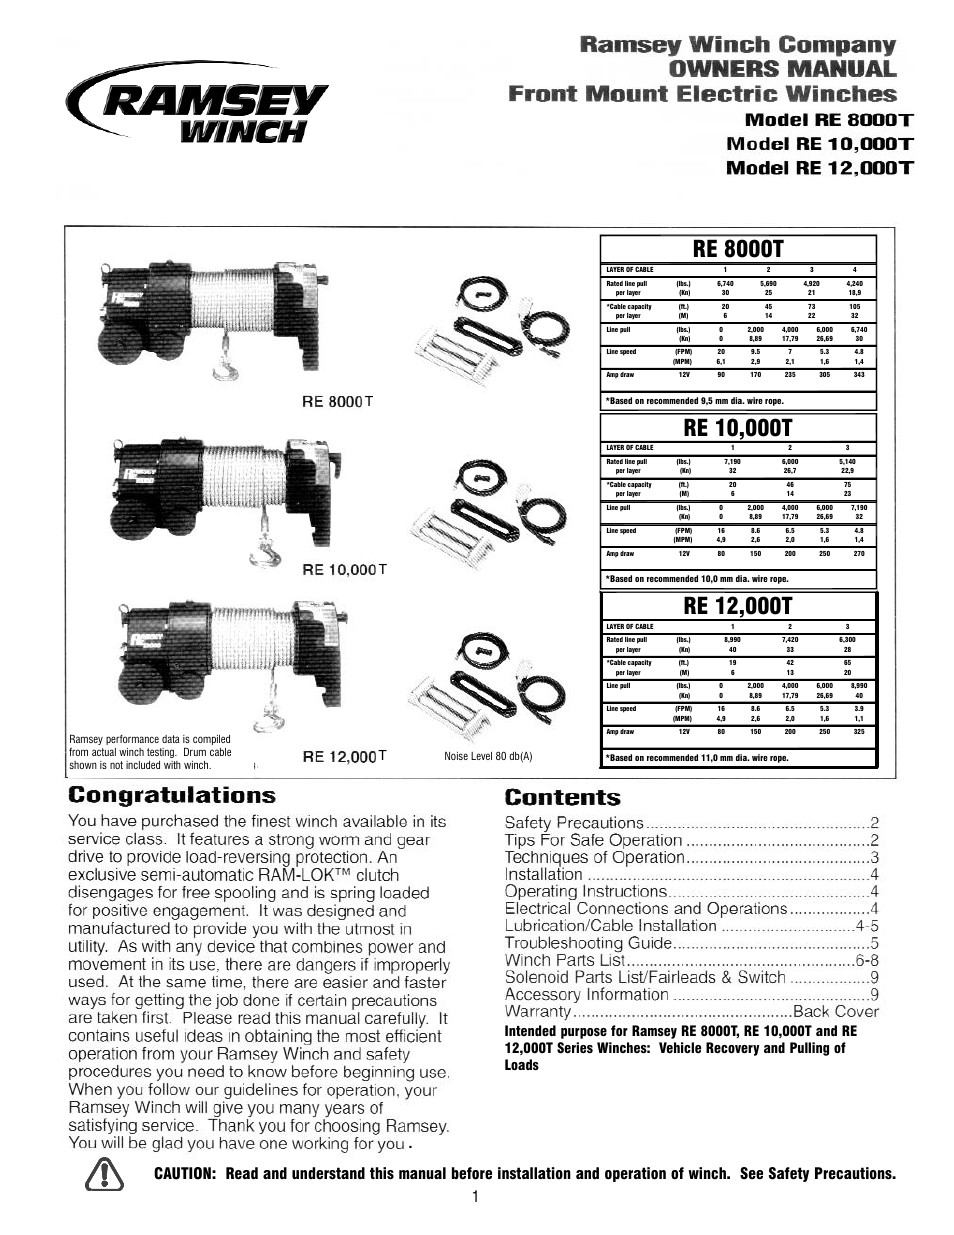 Quadratec Winch Wiring Diagram : Quadratec winch control box wiring diagram